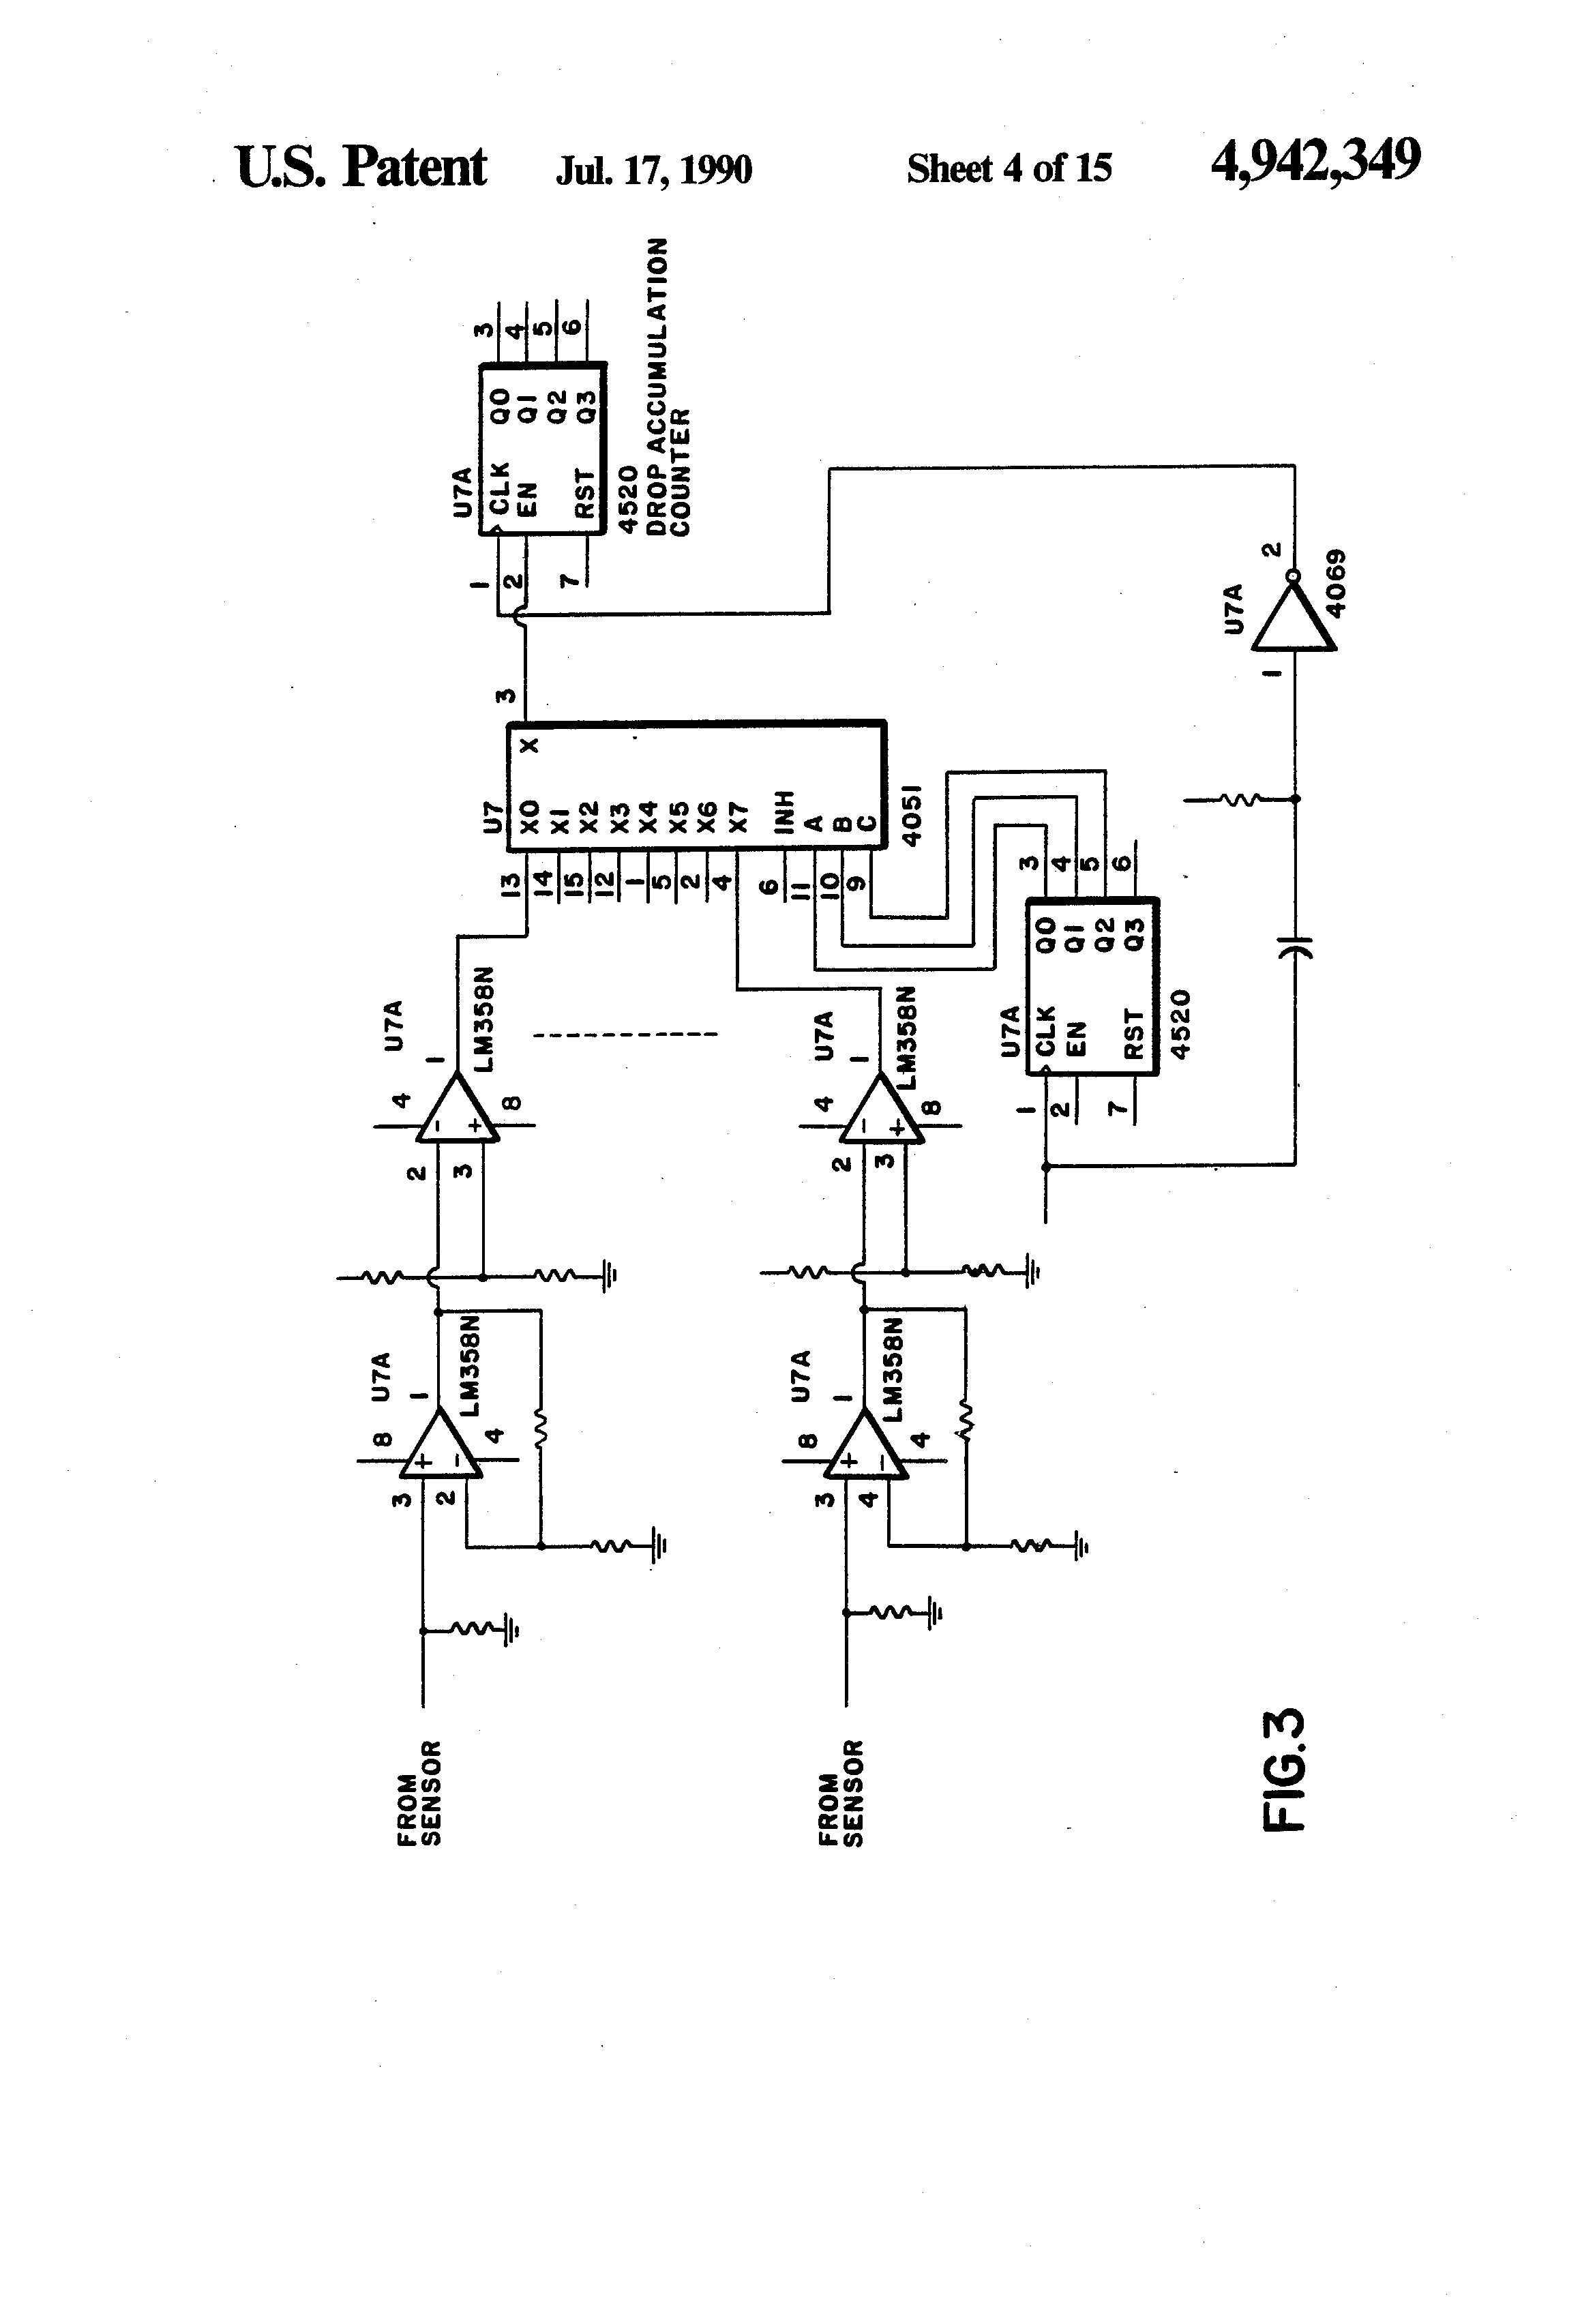 US4942349 4 sprague wiper motor wiring diagram wiring diagram shrutiradio sprague wiper motor wiring diagram at crackthecode.co